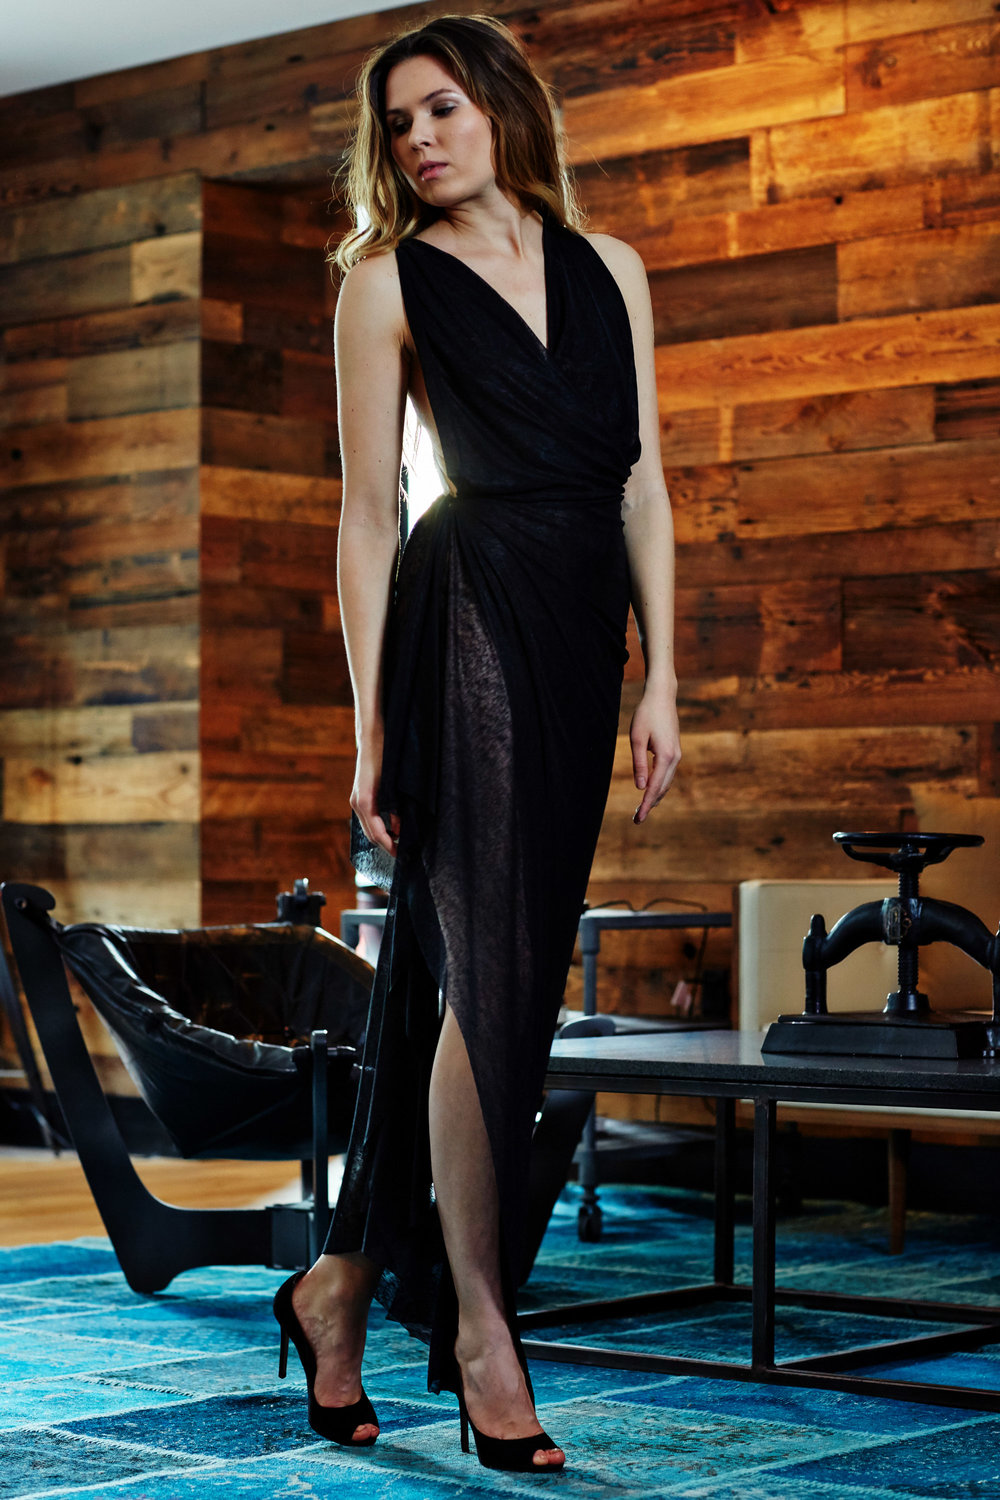 Minika-Ko-Kovasky-Collection-Lookbook-Fashion-Performance-Fabrics-Black-Sheer-Evening-Gown-Wrinkle-Resistant-Elegant-Style.jpg